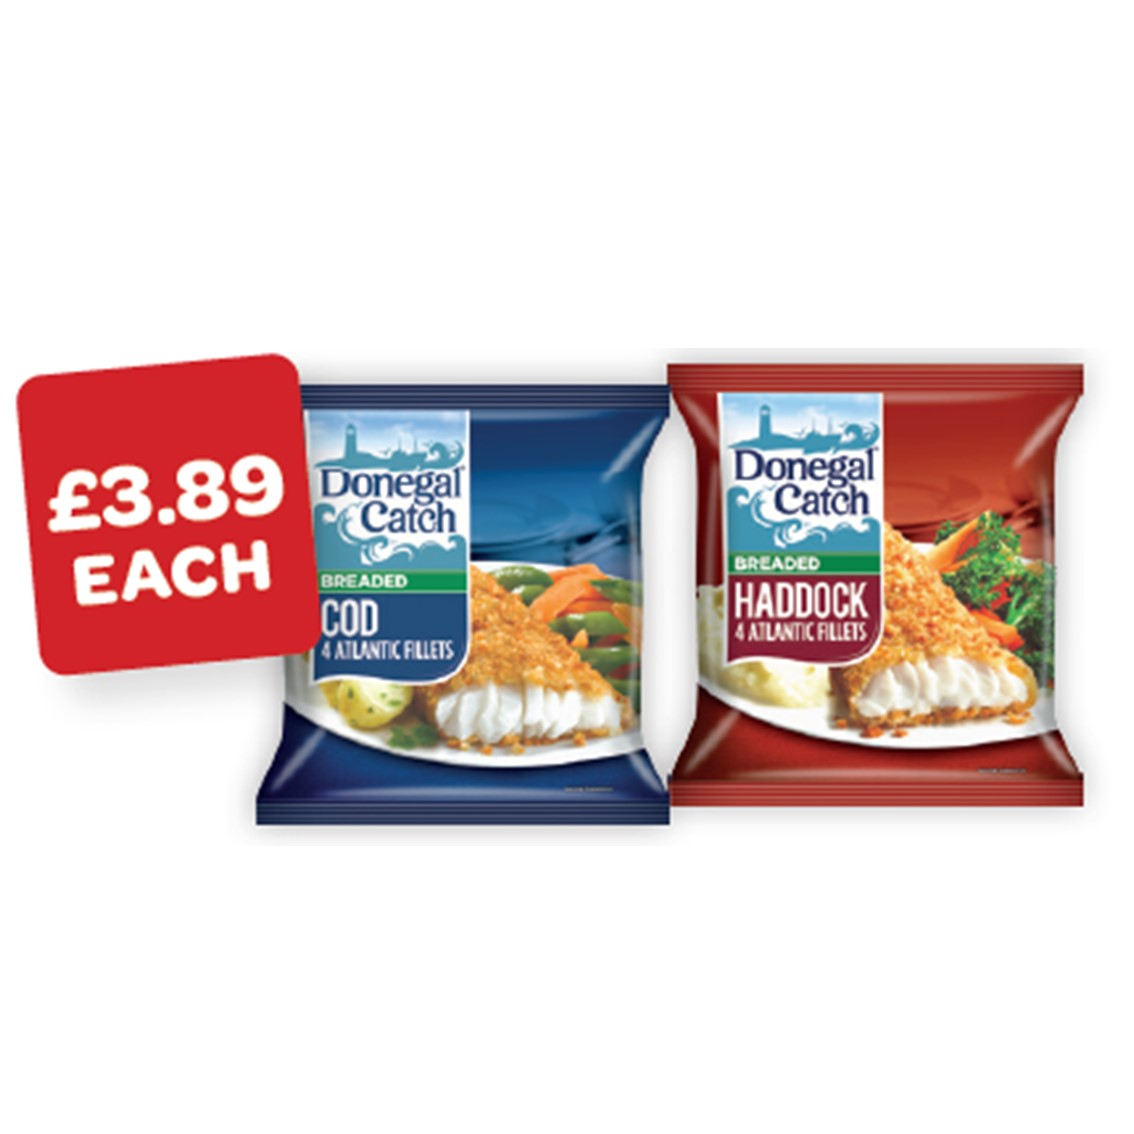 Donegal Catch Breaded Cod / Plaice / Whiting / Haddock / Battered Cod Fillets